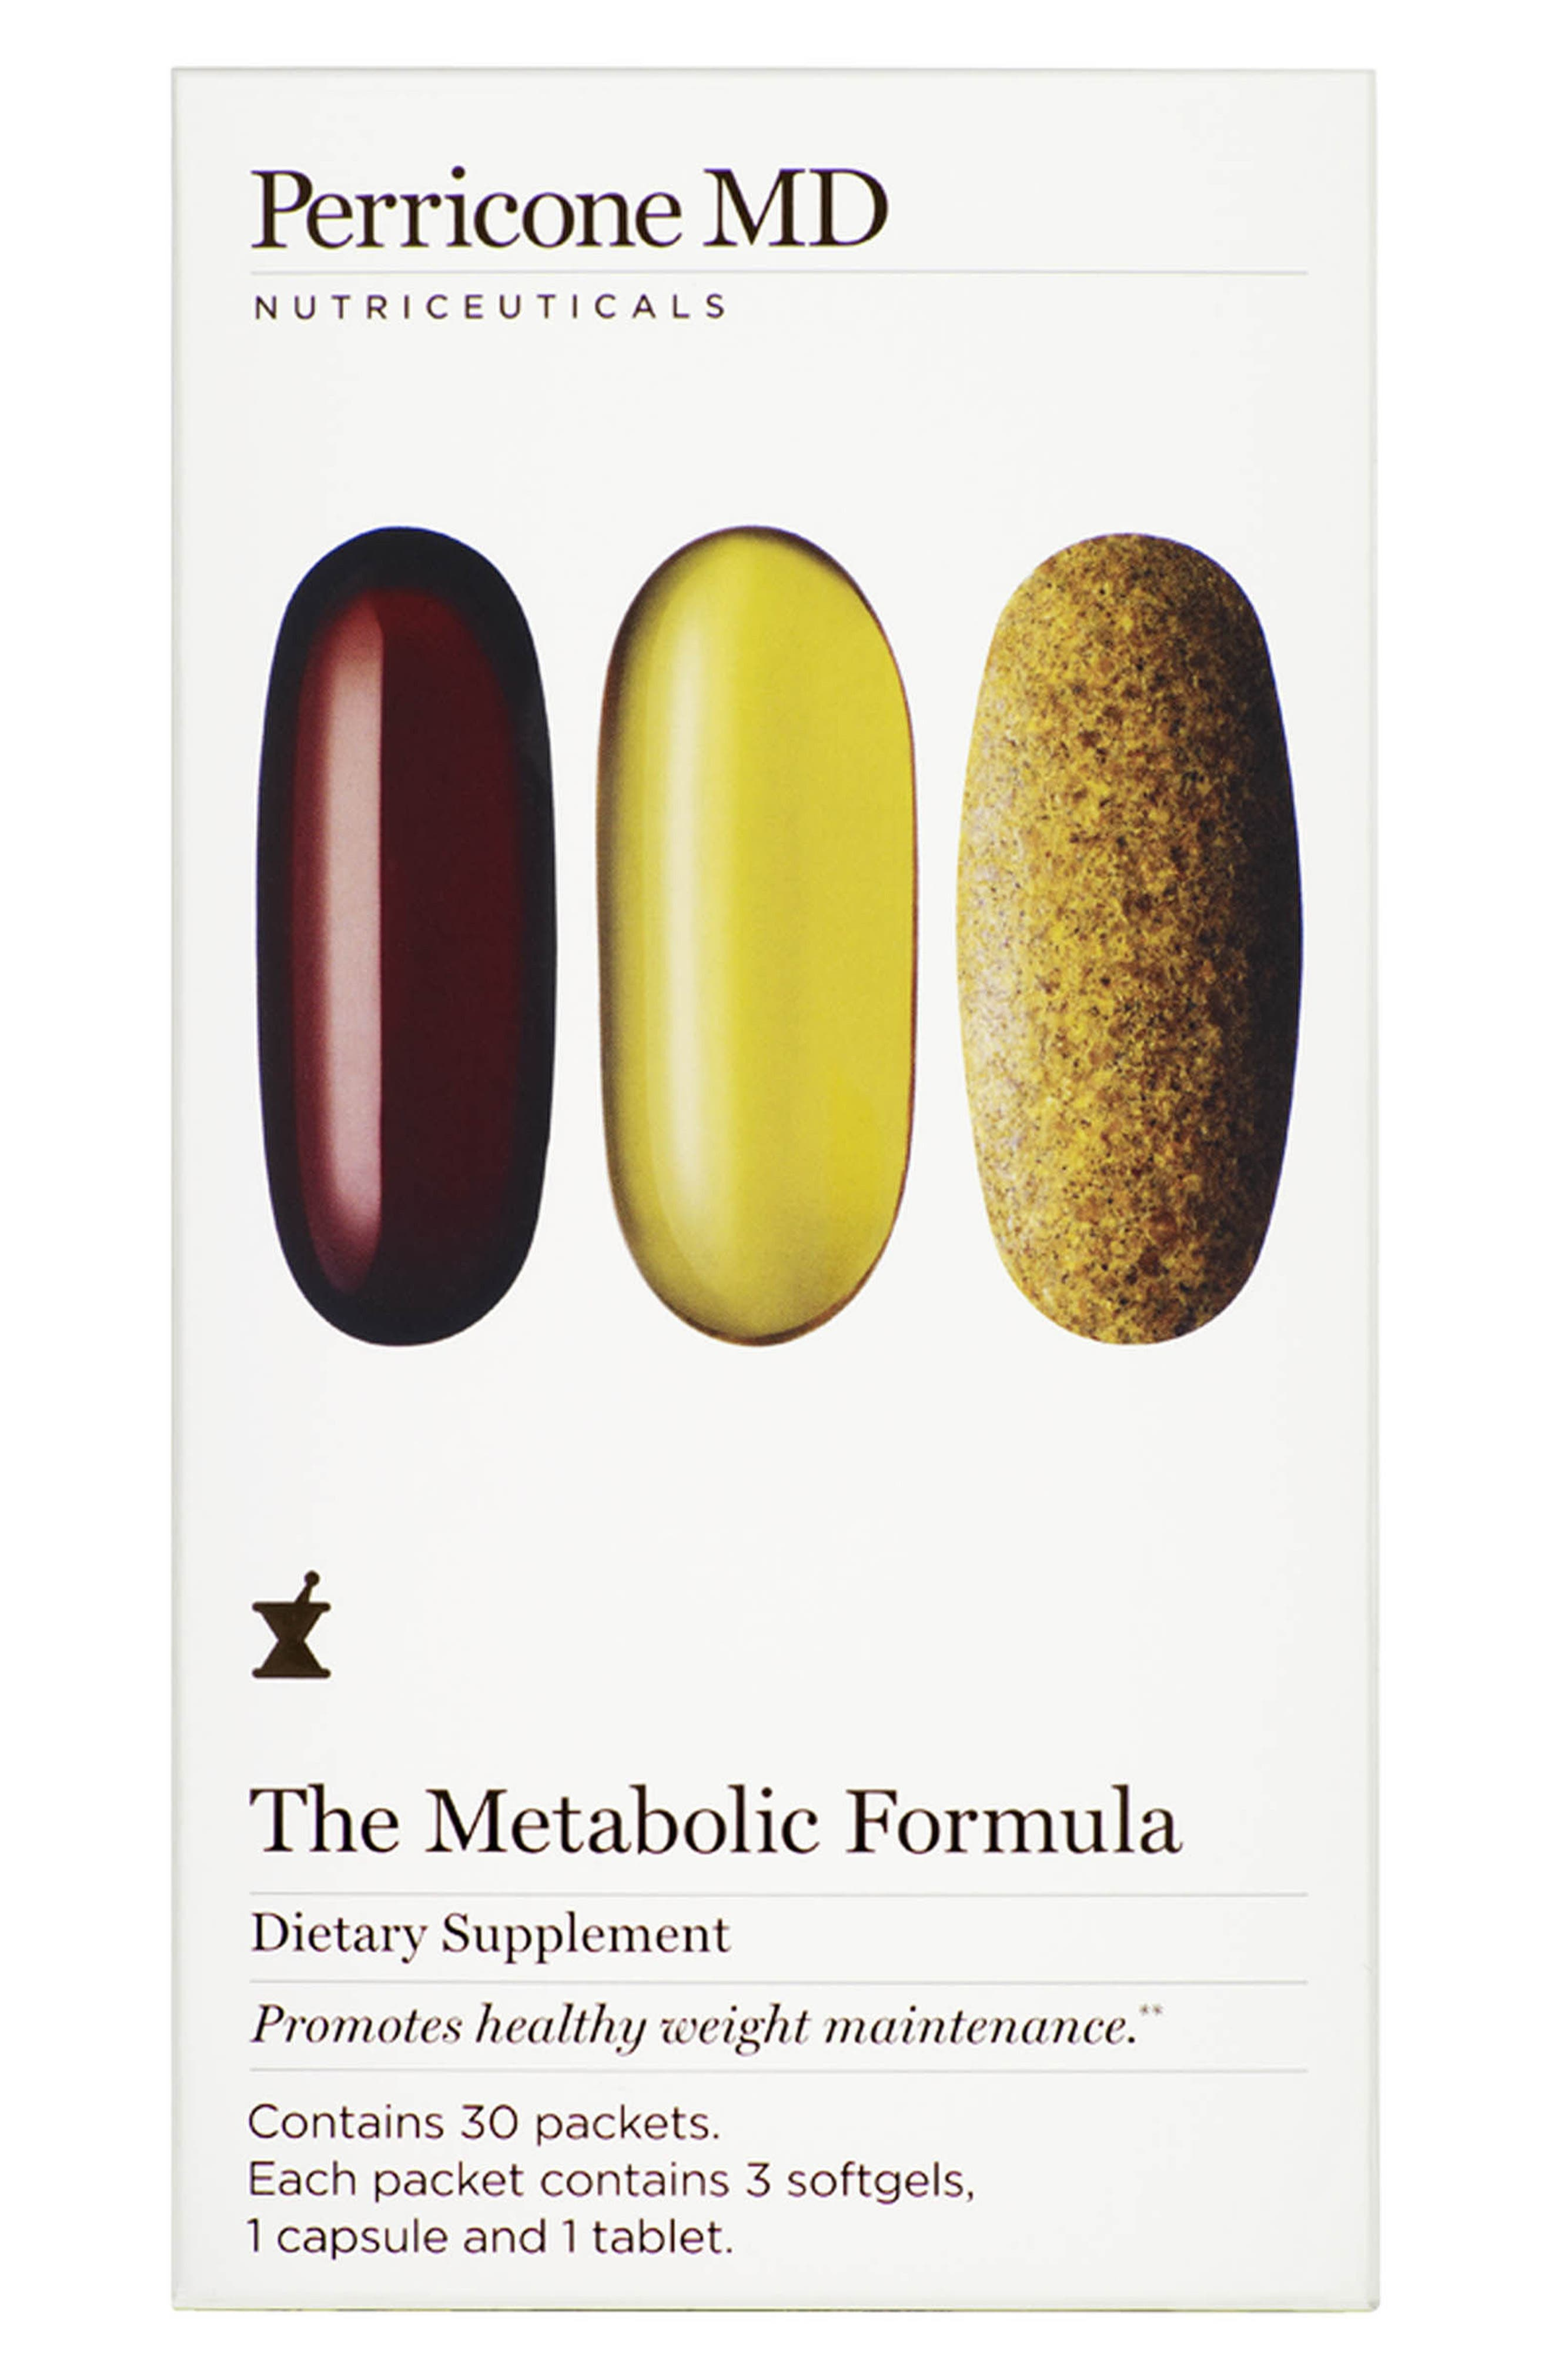 Perricone MD 'The Metabolic Formula' Dietary Supplement